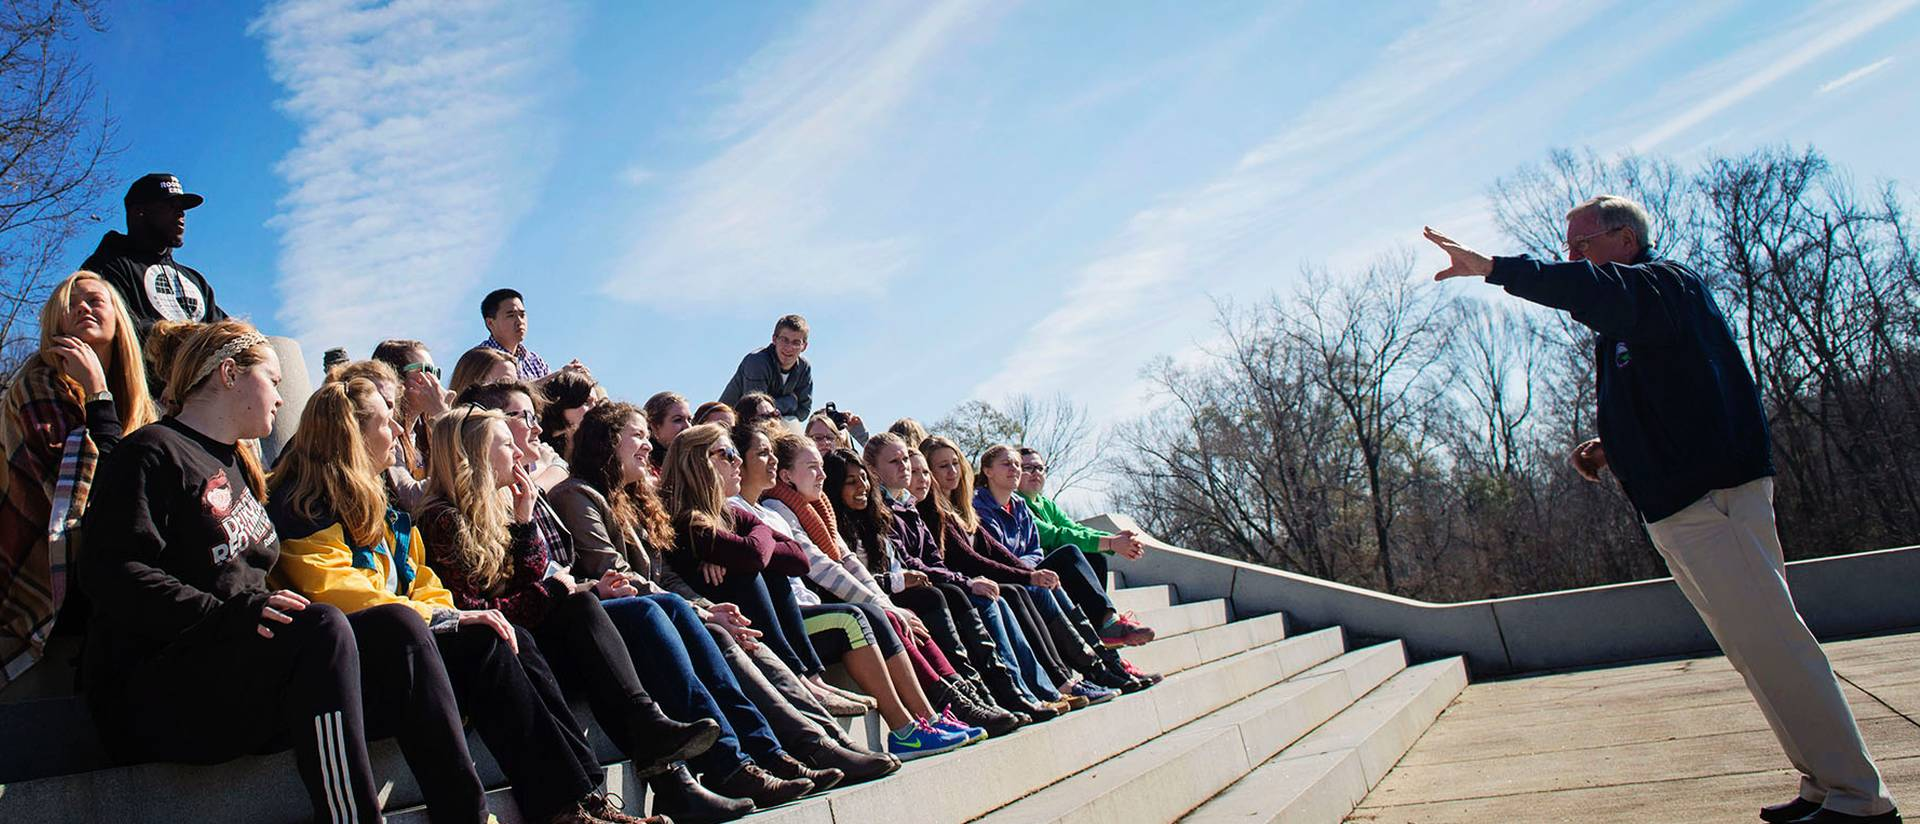 UW-Eau Claire students on the winter 2015 Civil Rights Pilgrimage learn the important role African-Americans played in the Union's Civil War victory during a visit to the Vicksburg National Military Park.